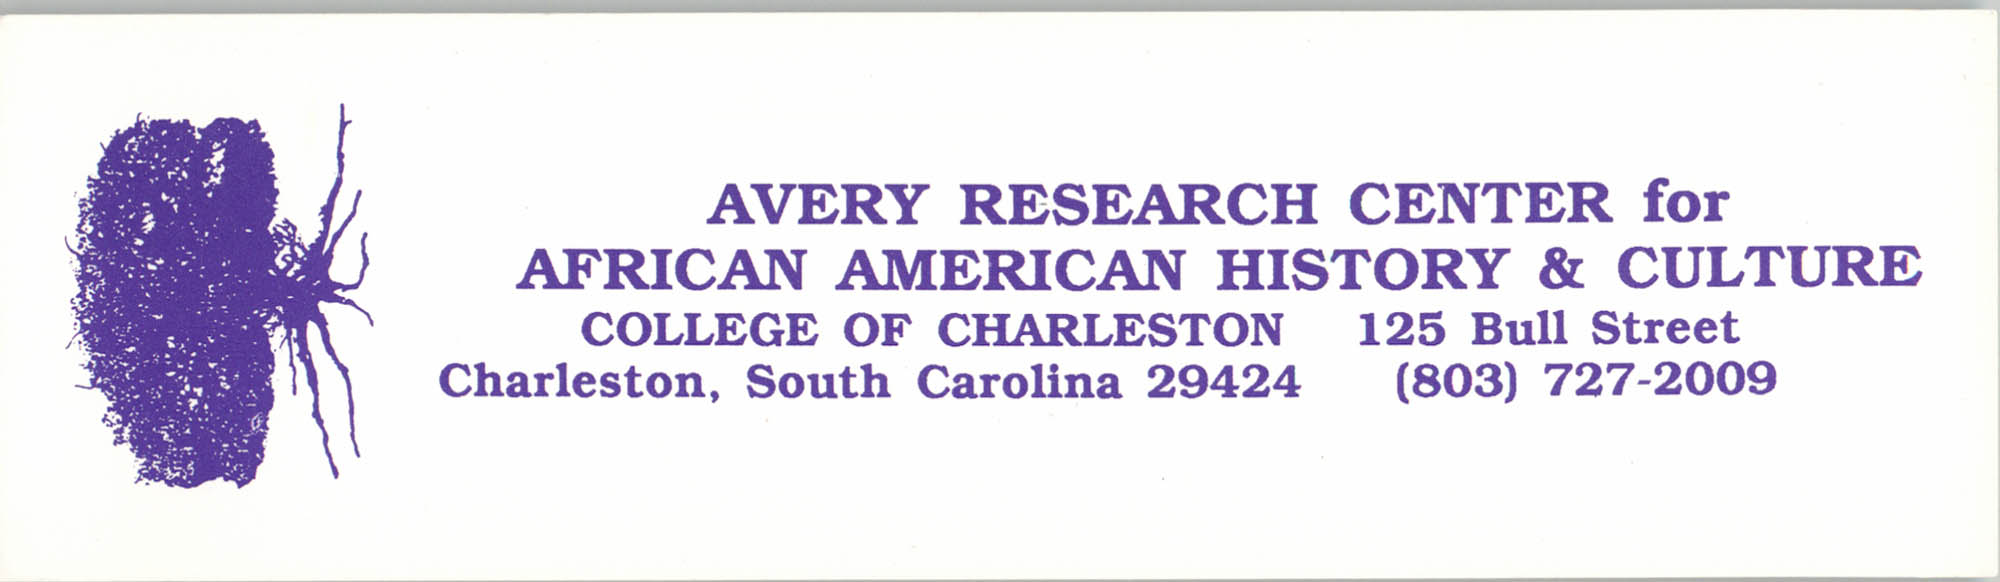 Avery Research Center for African American History and Culture, Bumper Sticker